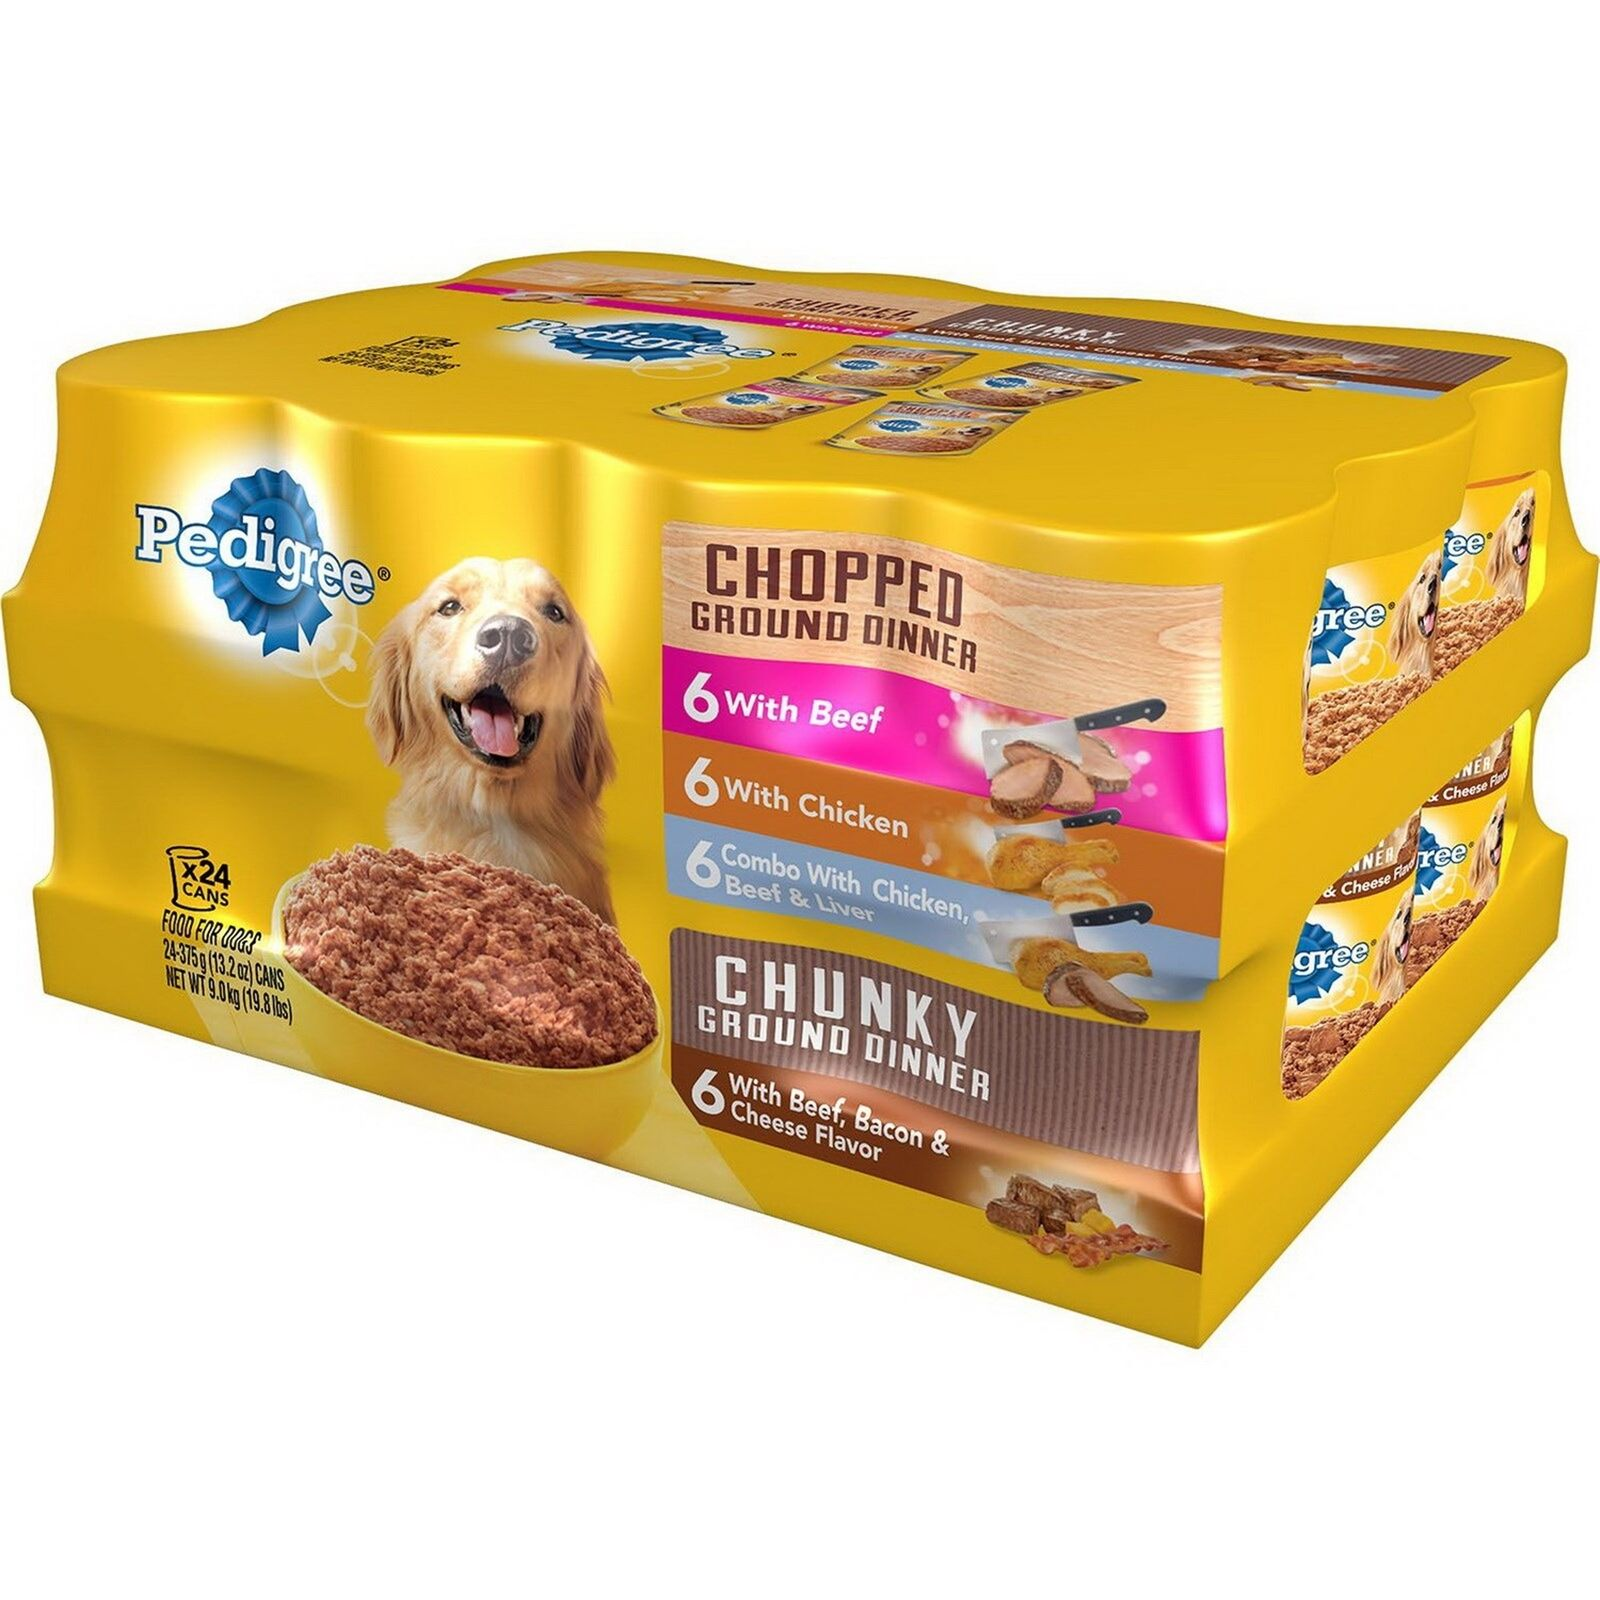 Pedigree Dog Food 24 can Ground Dinner Canned Soft Wet